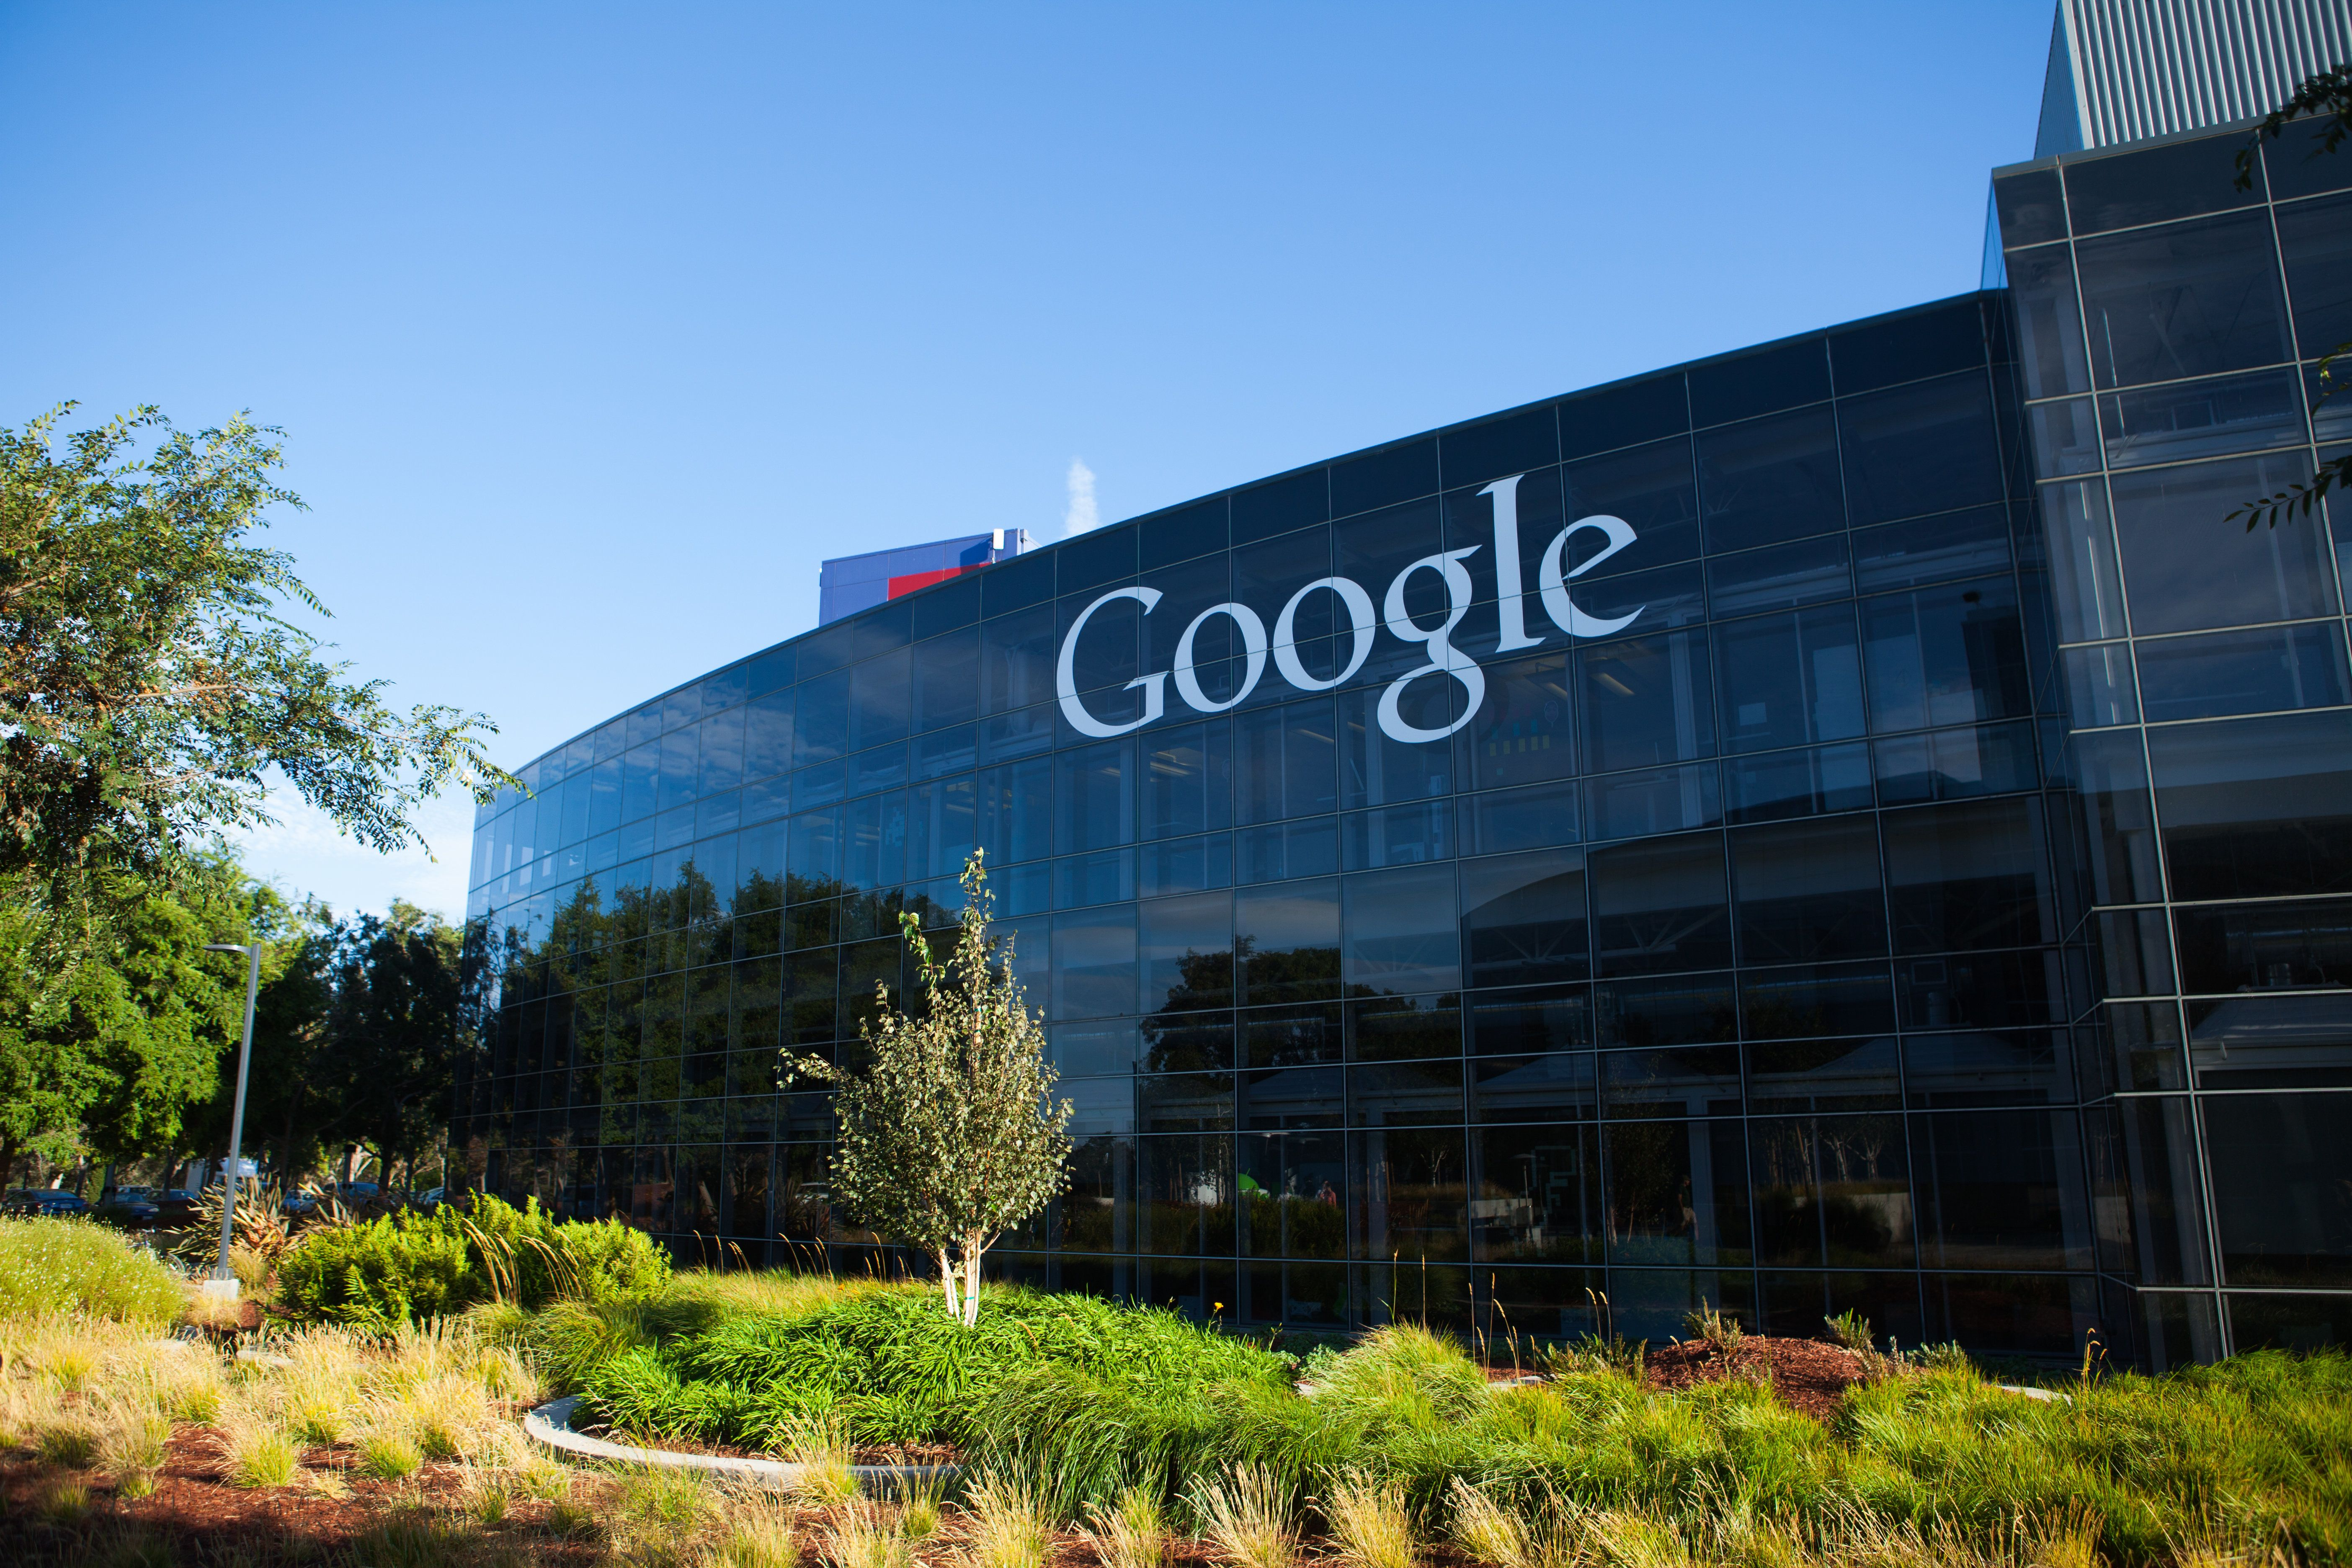 Google's workforce is disproportionately white and